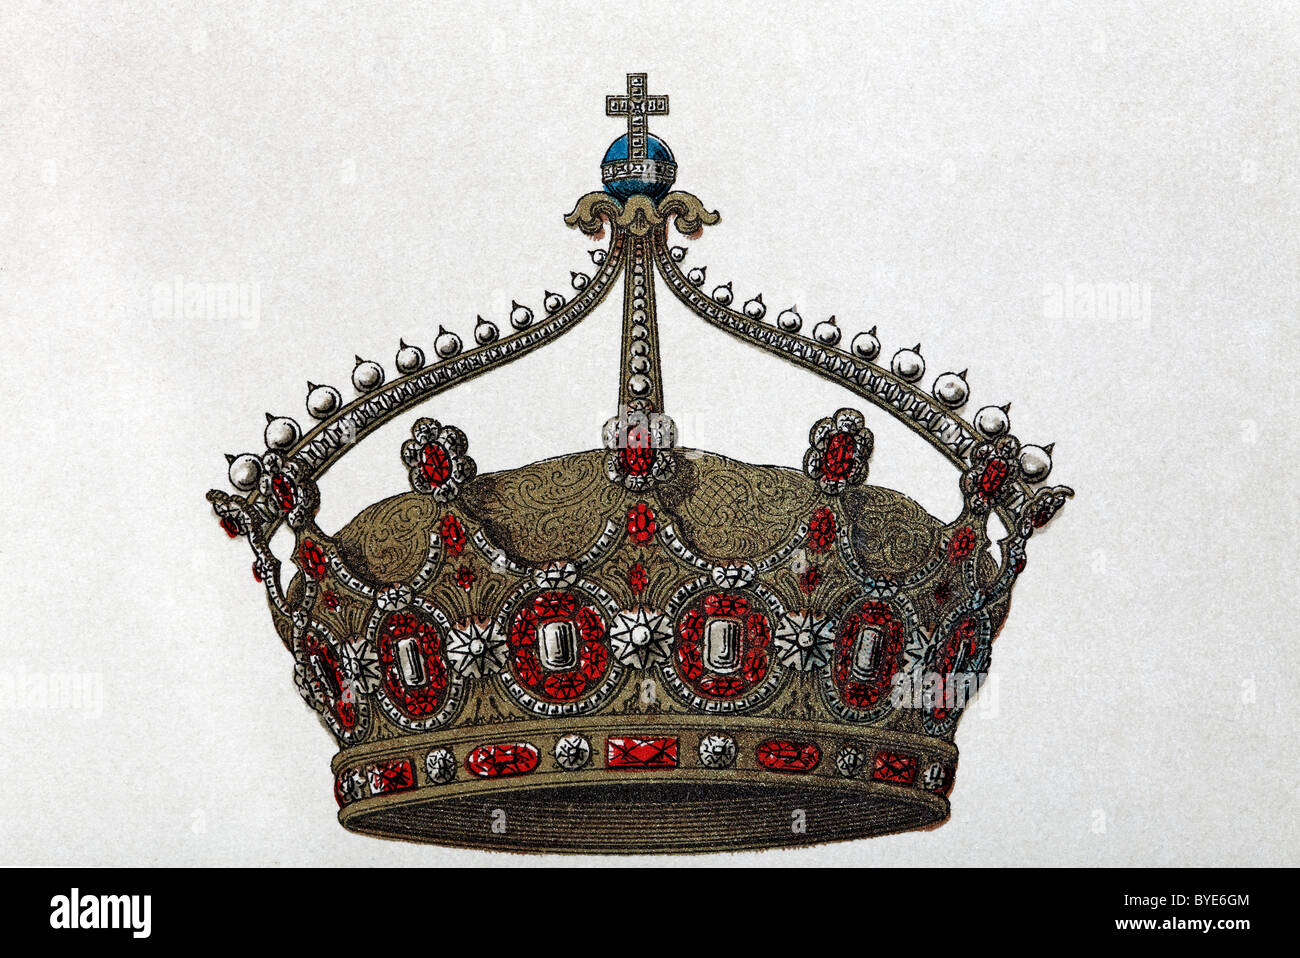 German imperial crown, Chromotafel, historical book illustration, Brockhaus Konversationslexikon, an encyclopaedia - Stock Image